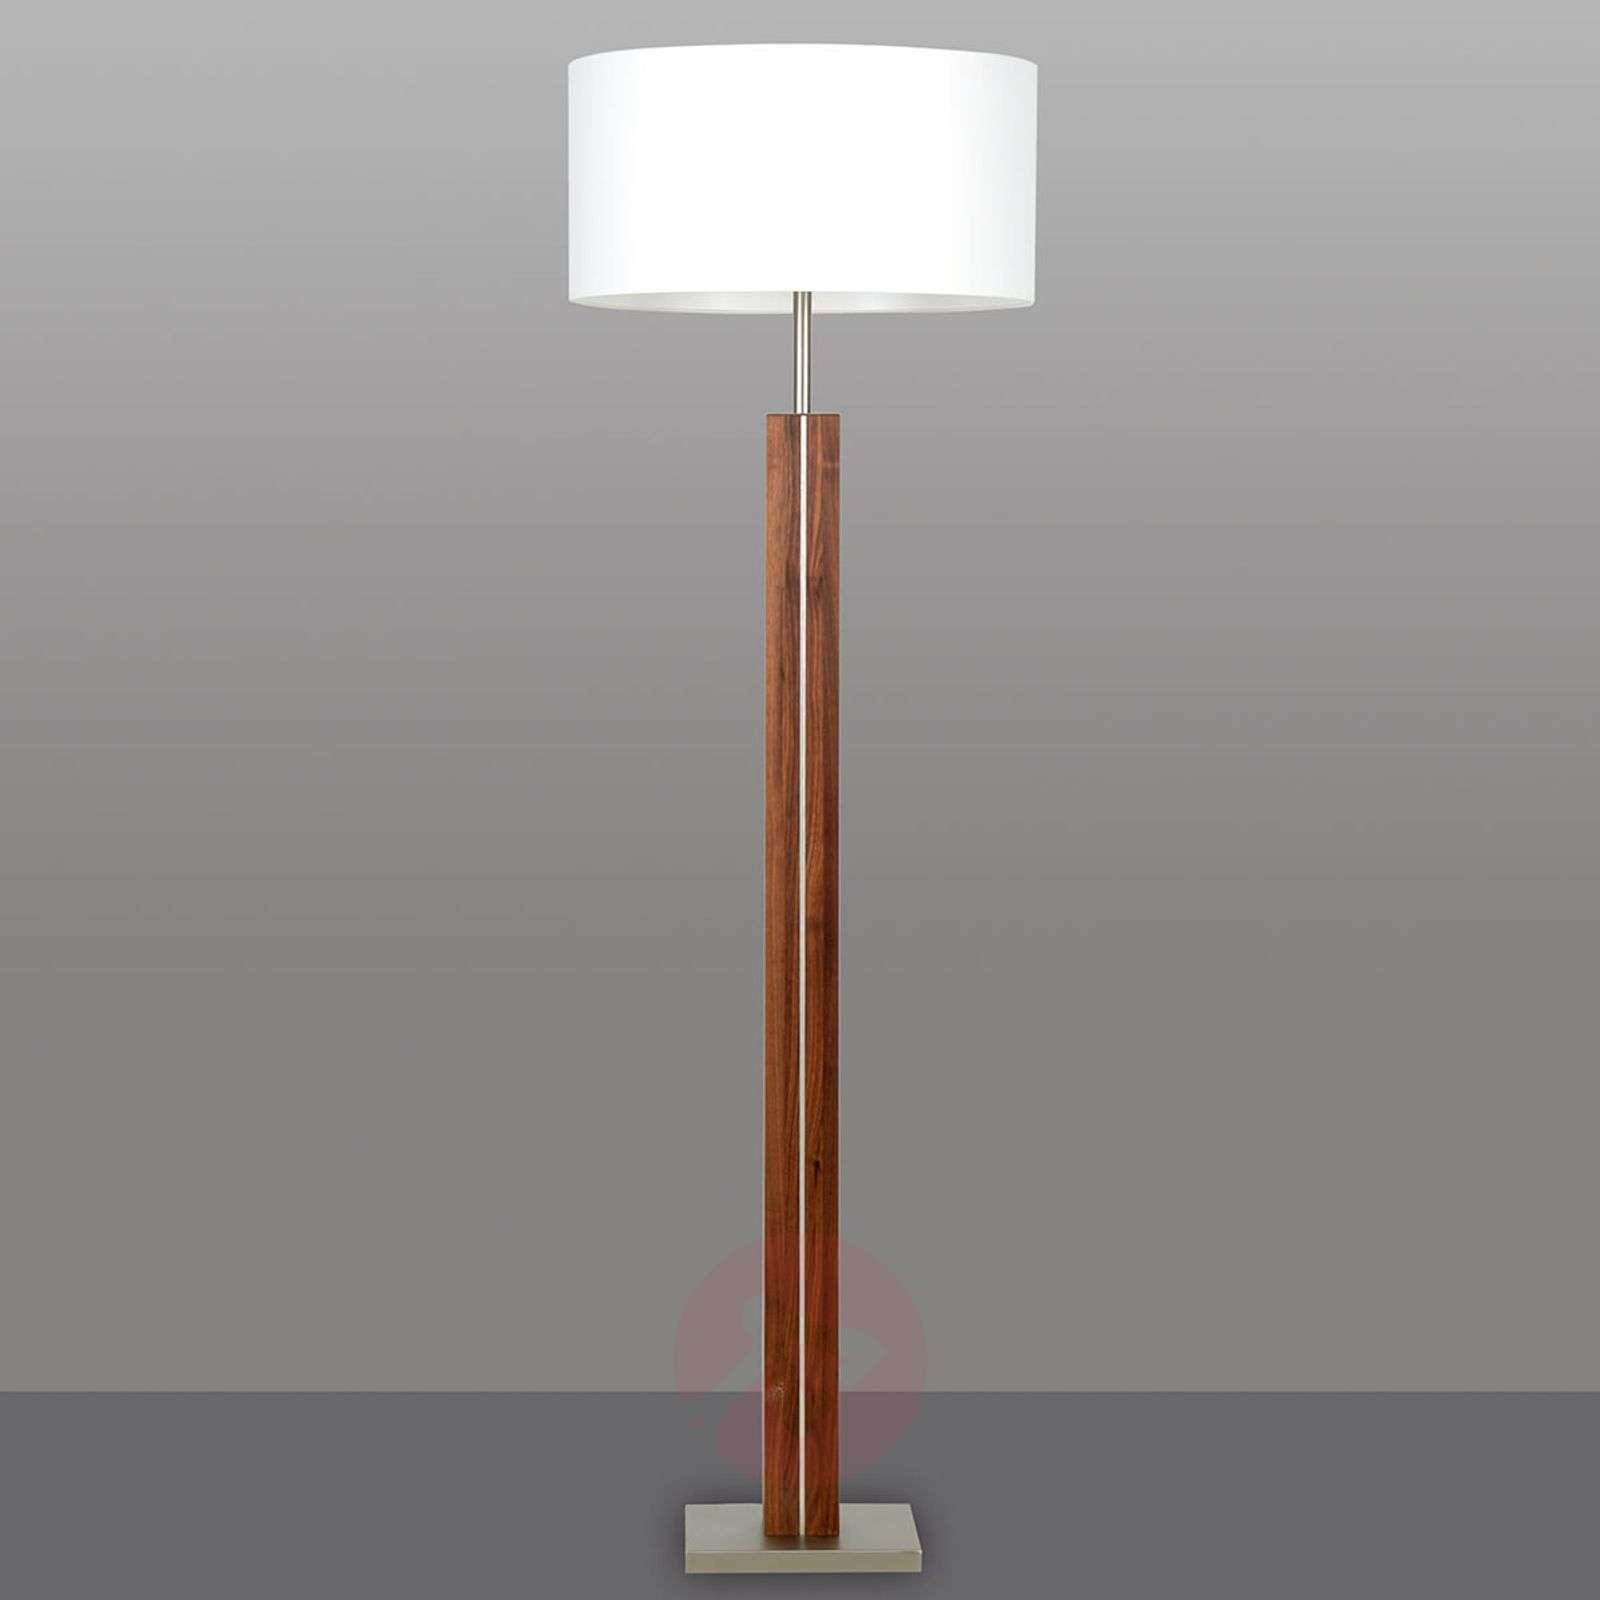 Wooden floor lamp dana with white fabric shade lightscouk for Make wooden floor lamp